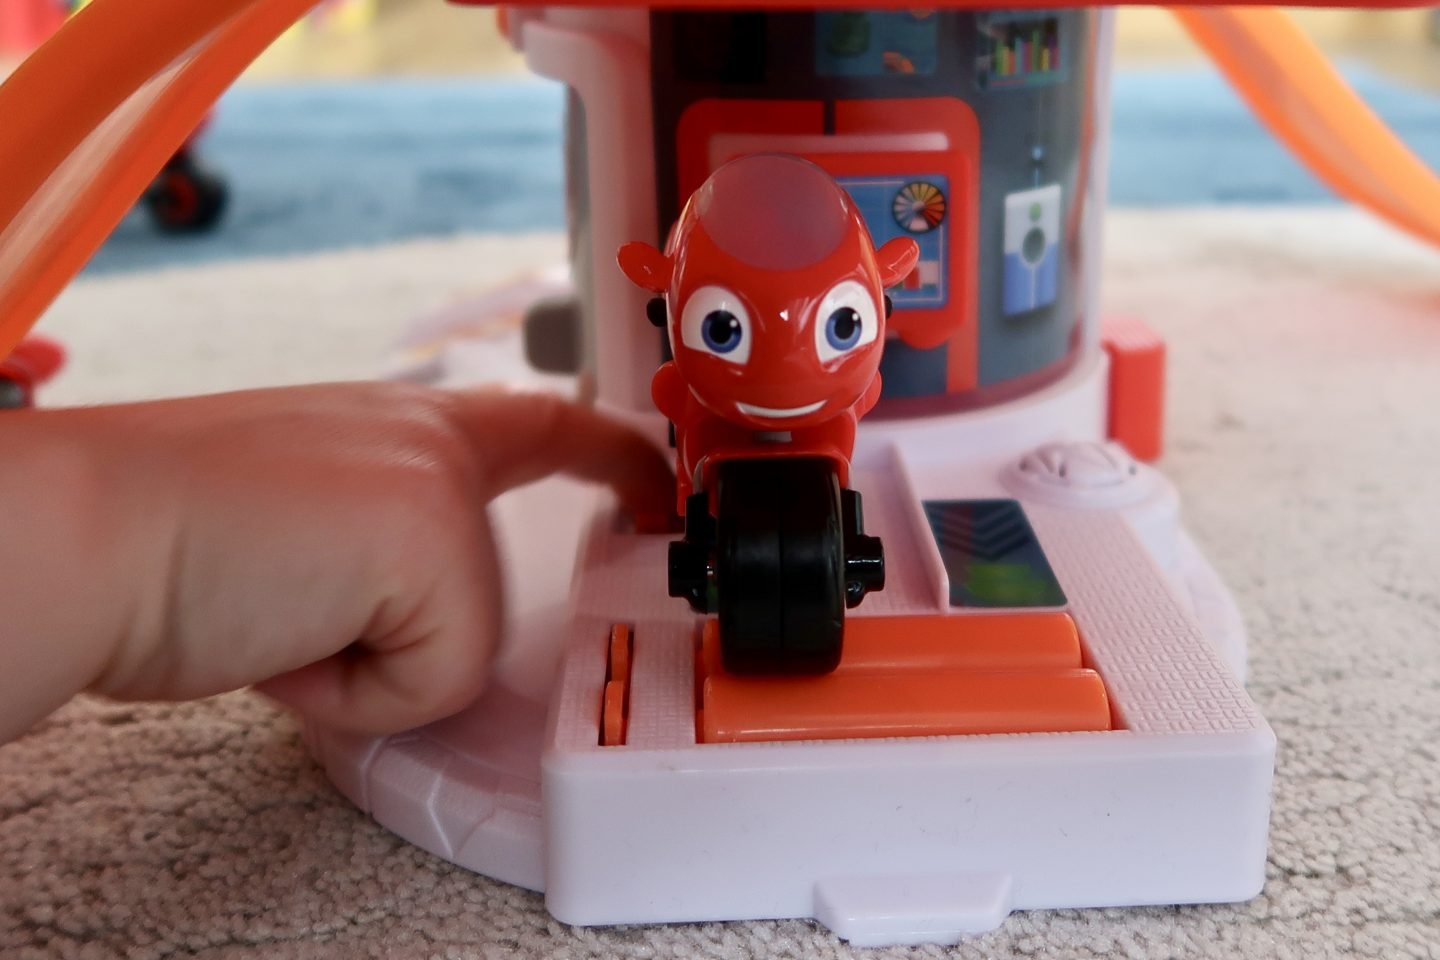 A Ricky Zoom toy on the tyre checker of Ricky's House Play set. The toy is facing the camera while a child's hand turns the spinners